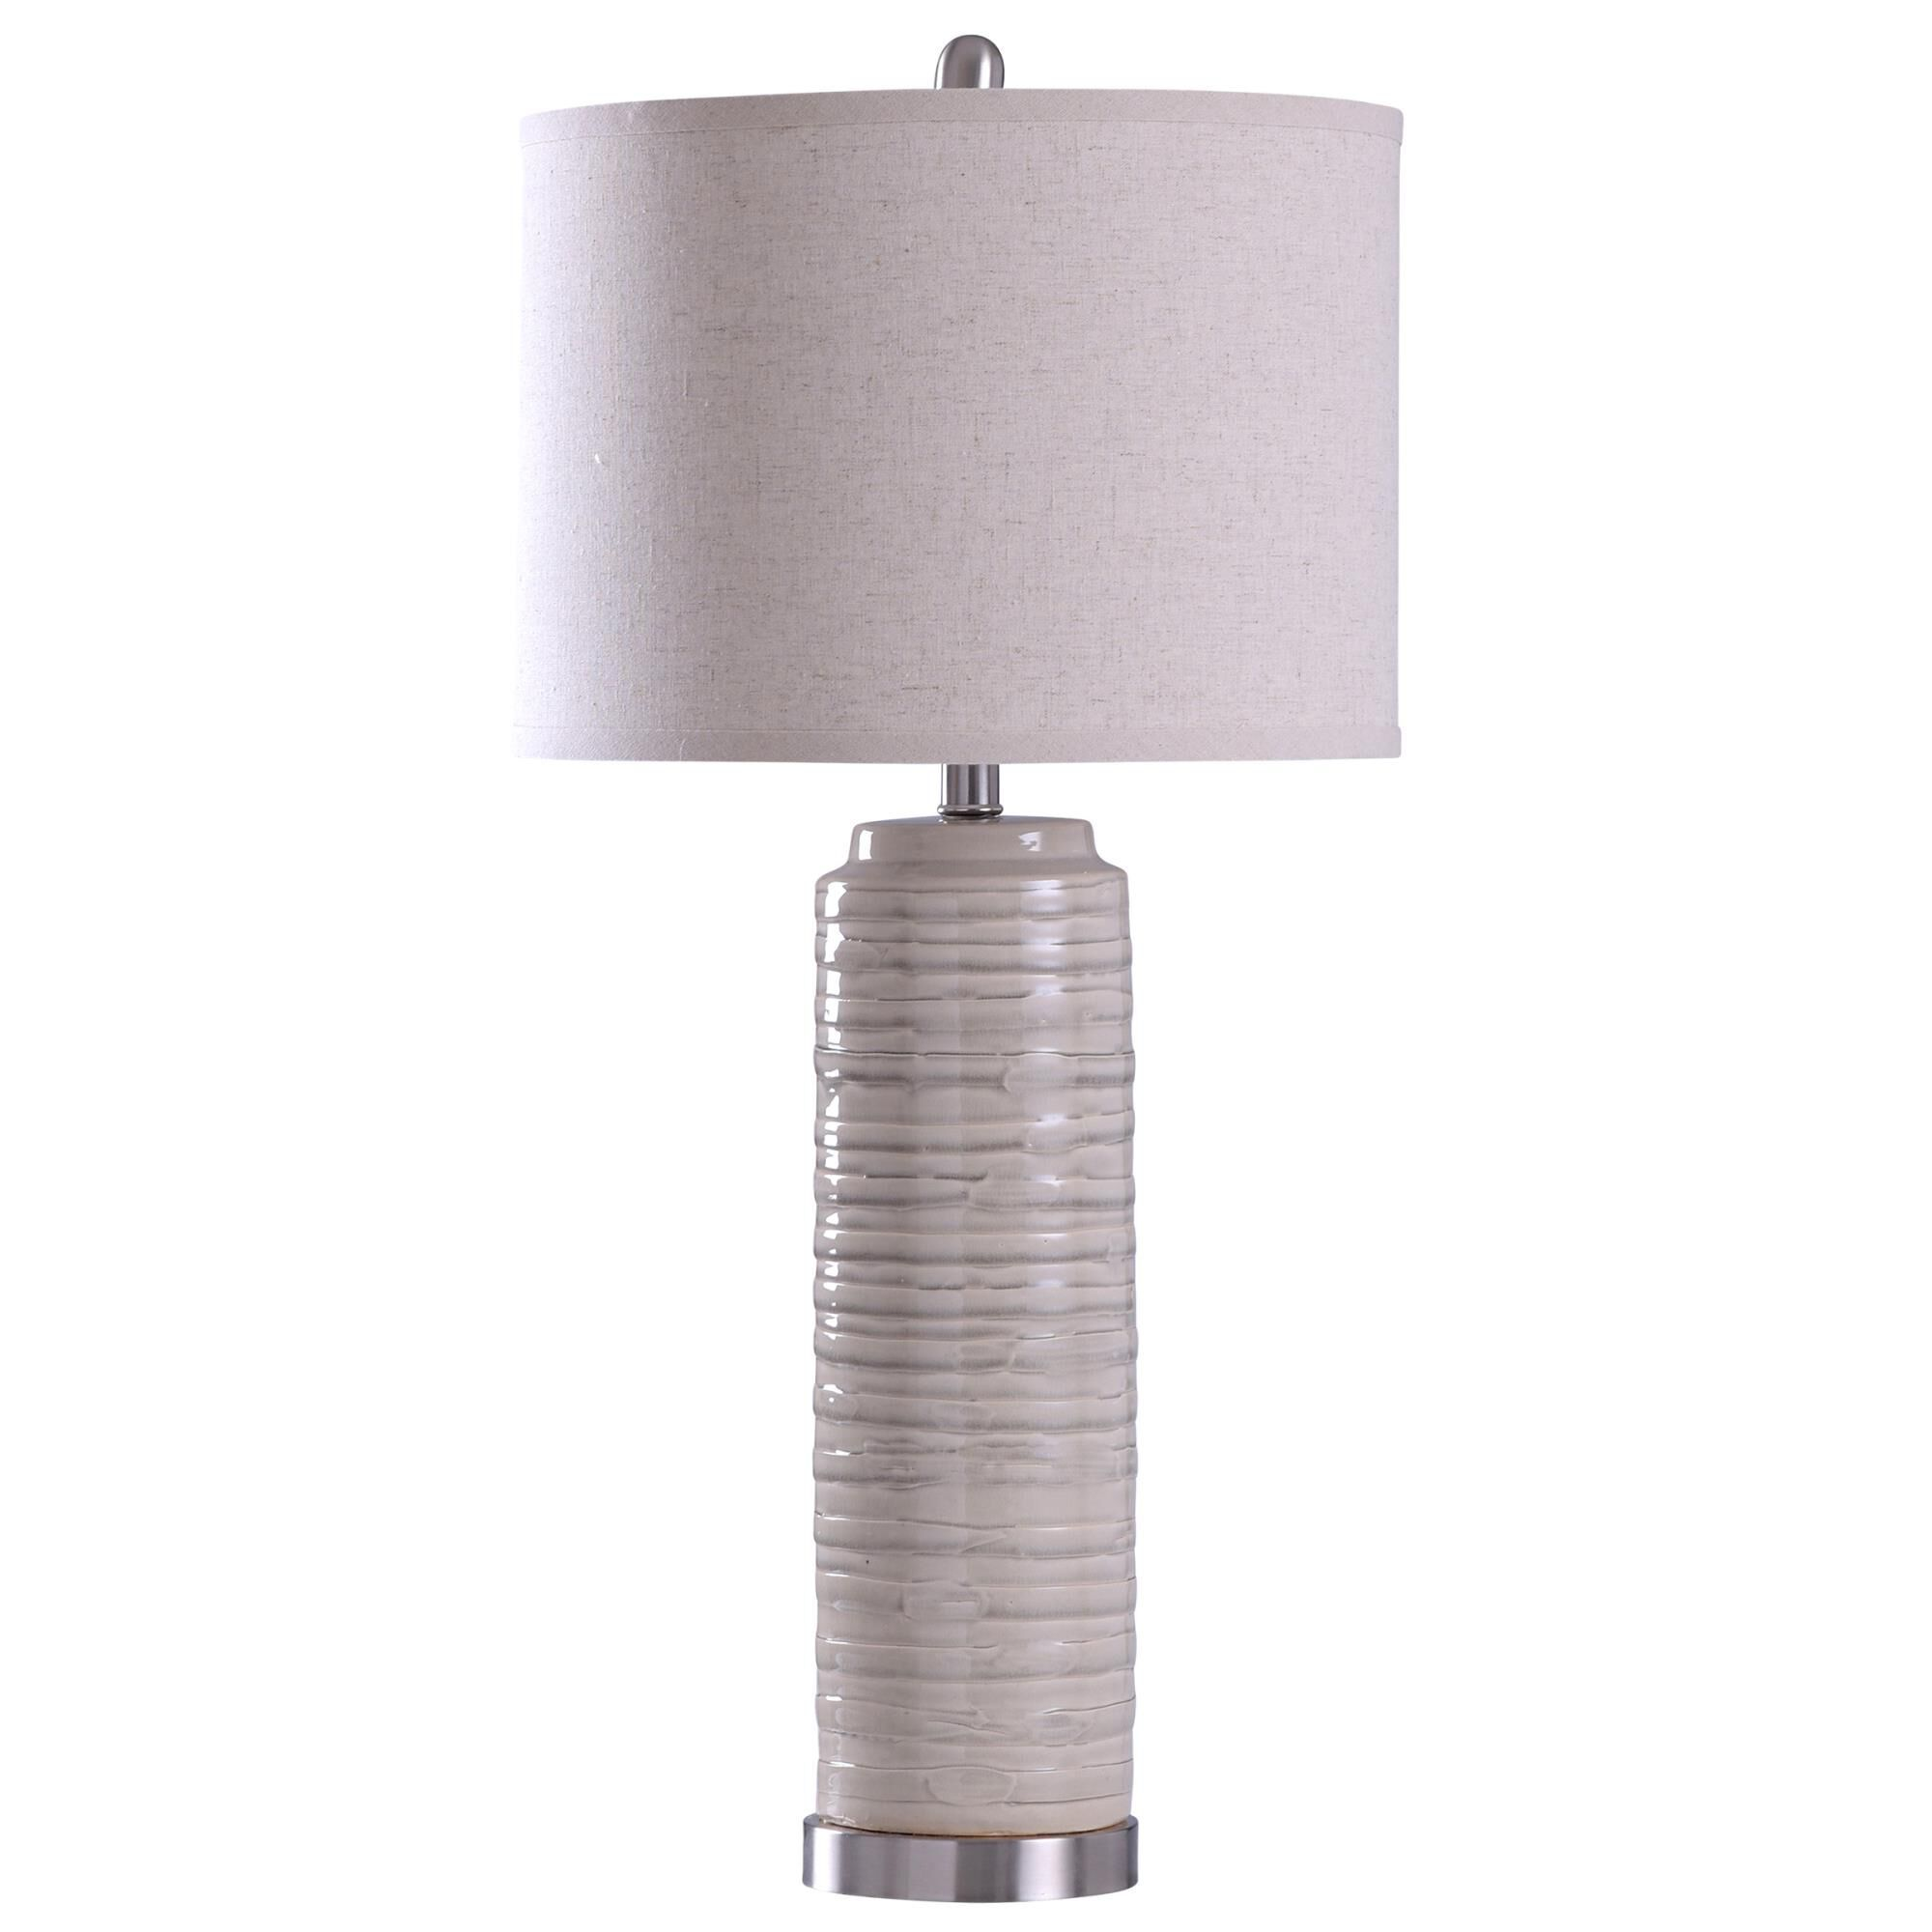 30 Inch Table Lamp Capitol Lighting Beige Table Lamps Table Lamp Lamp